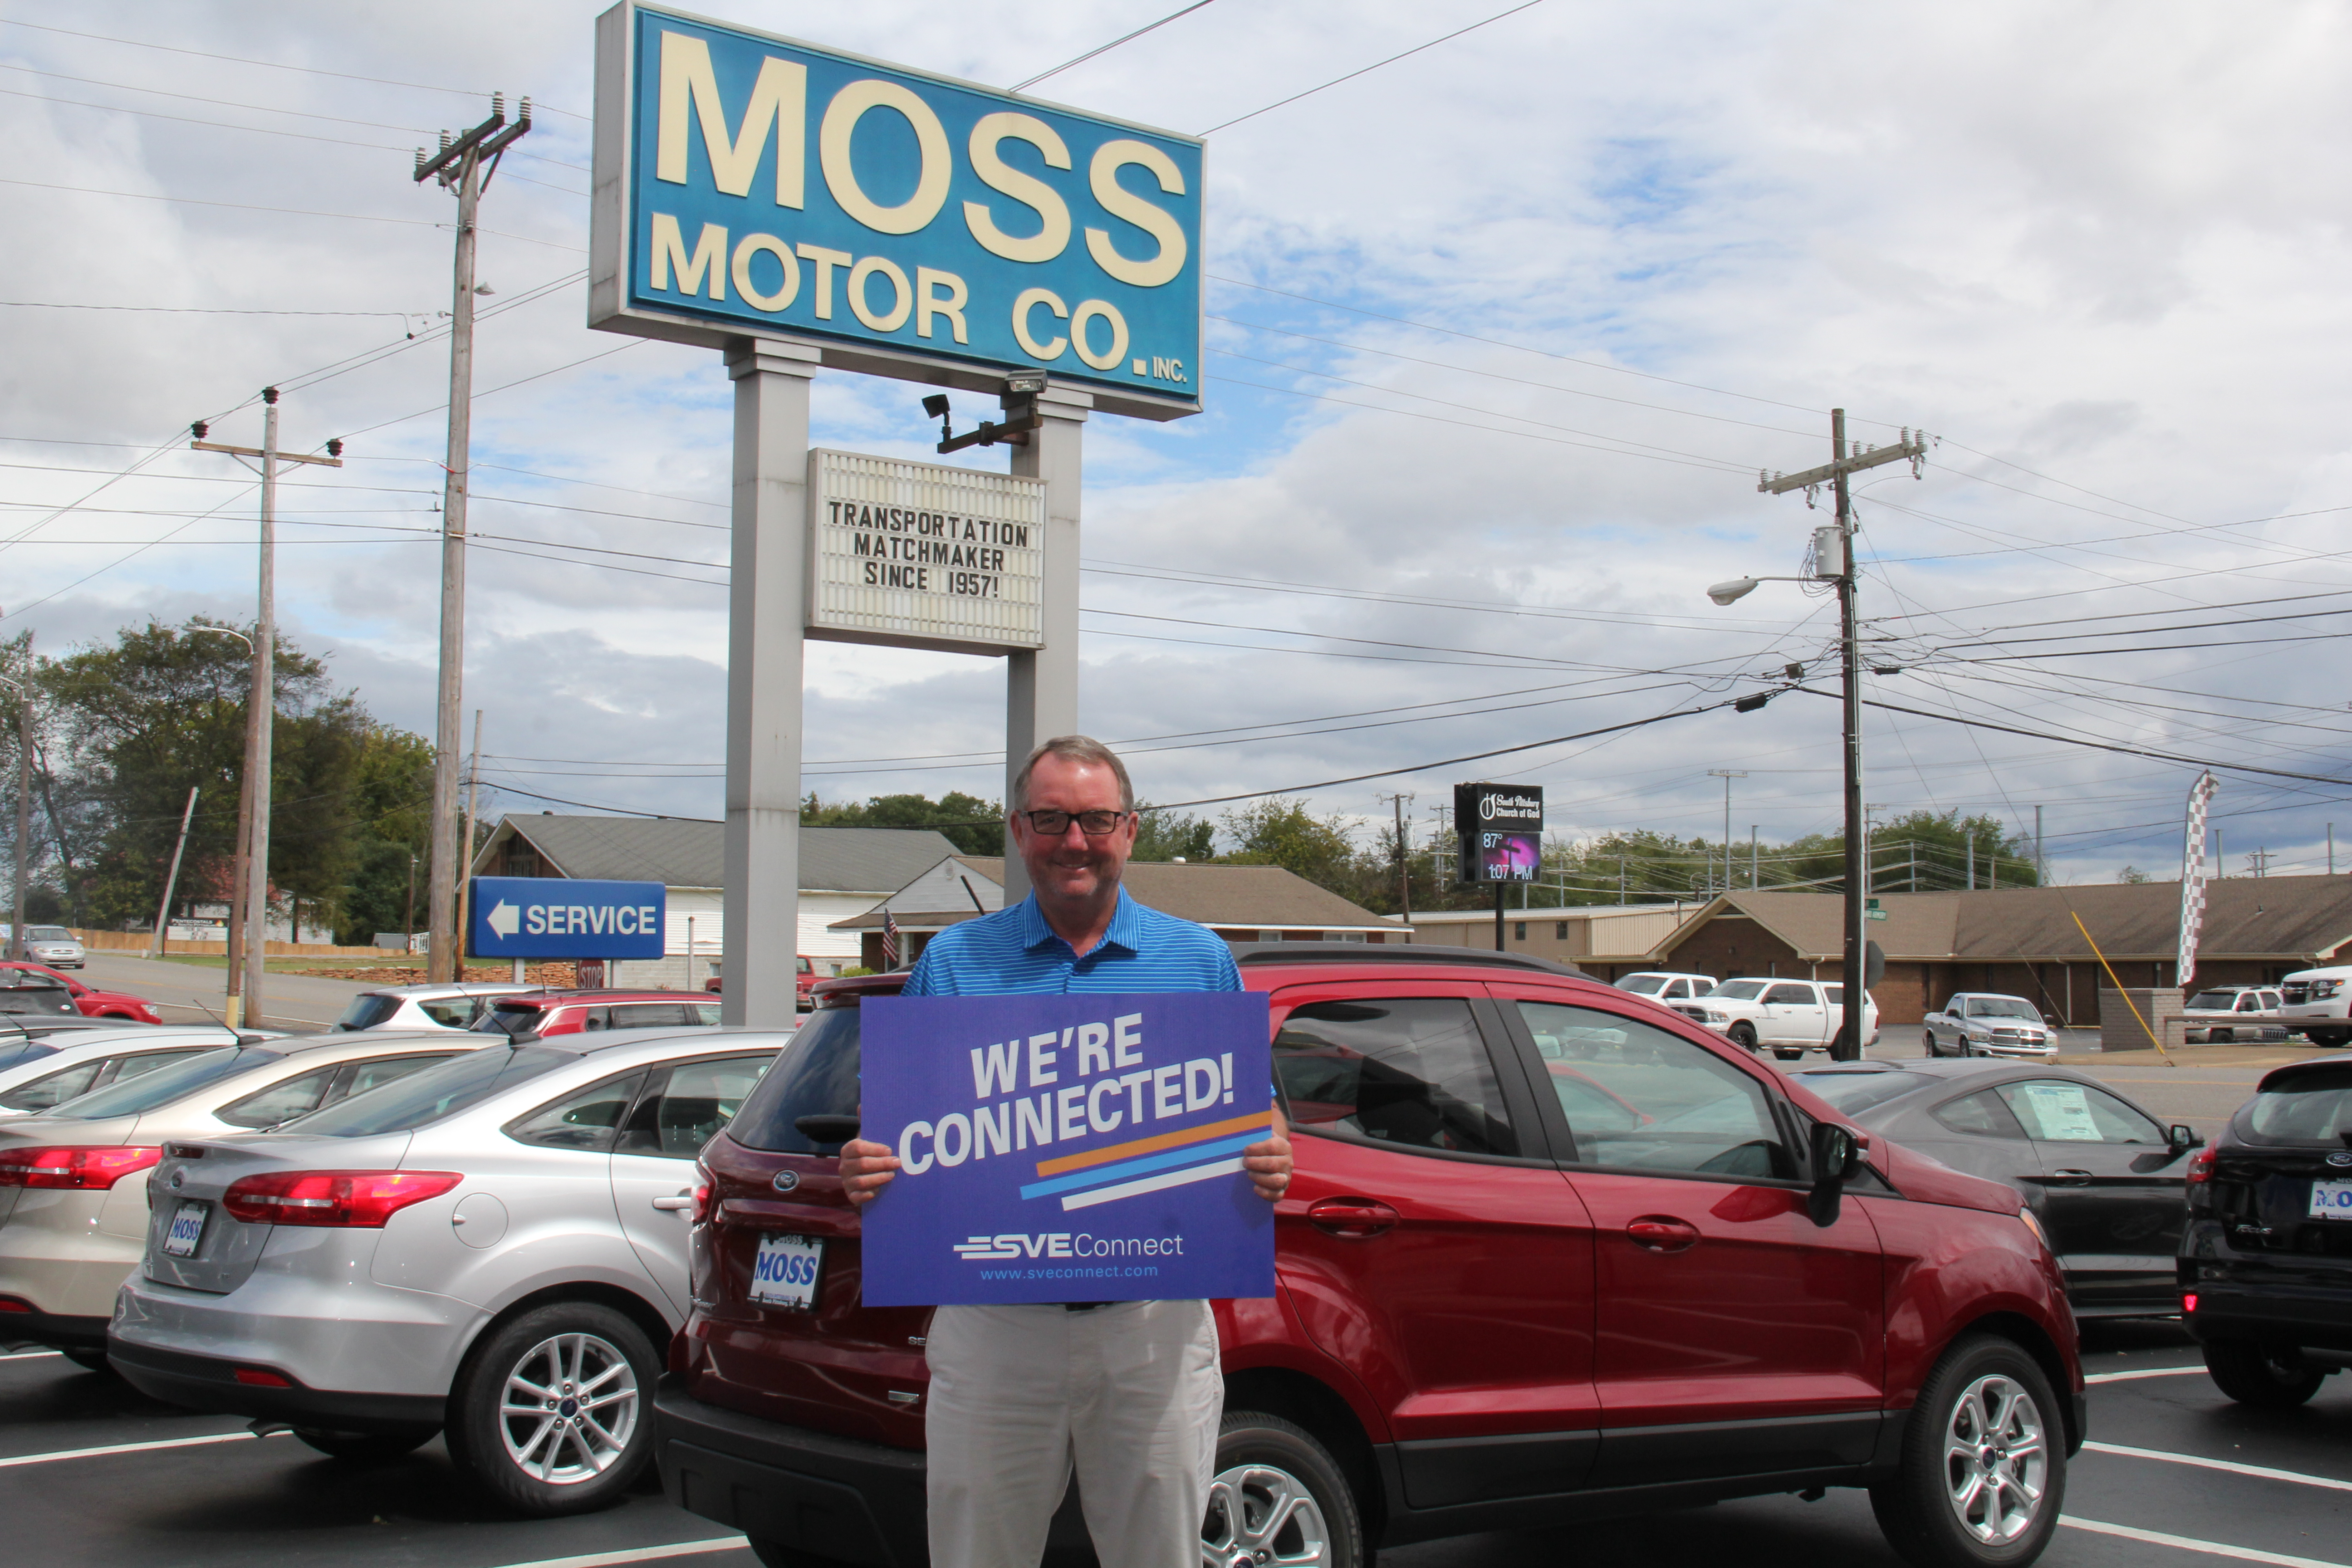 Steve Moss with Moss Motor in South Pittsburg is Connected